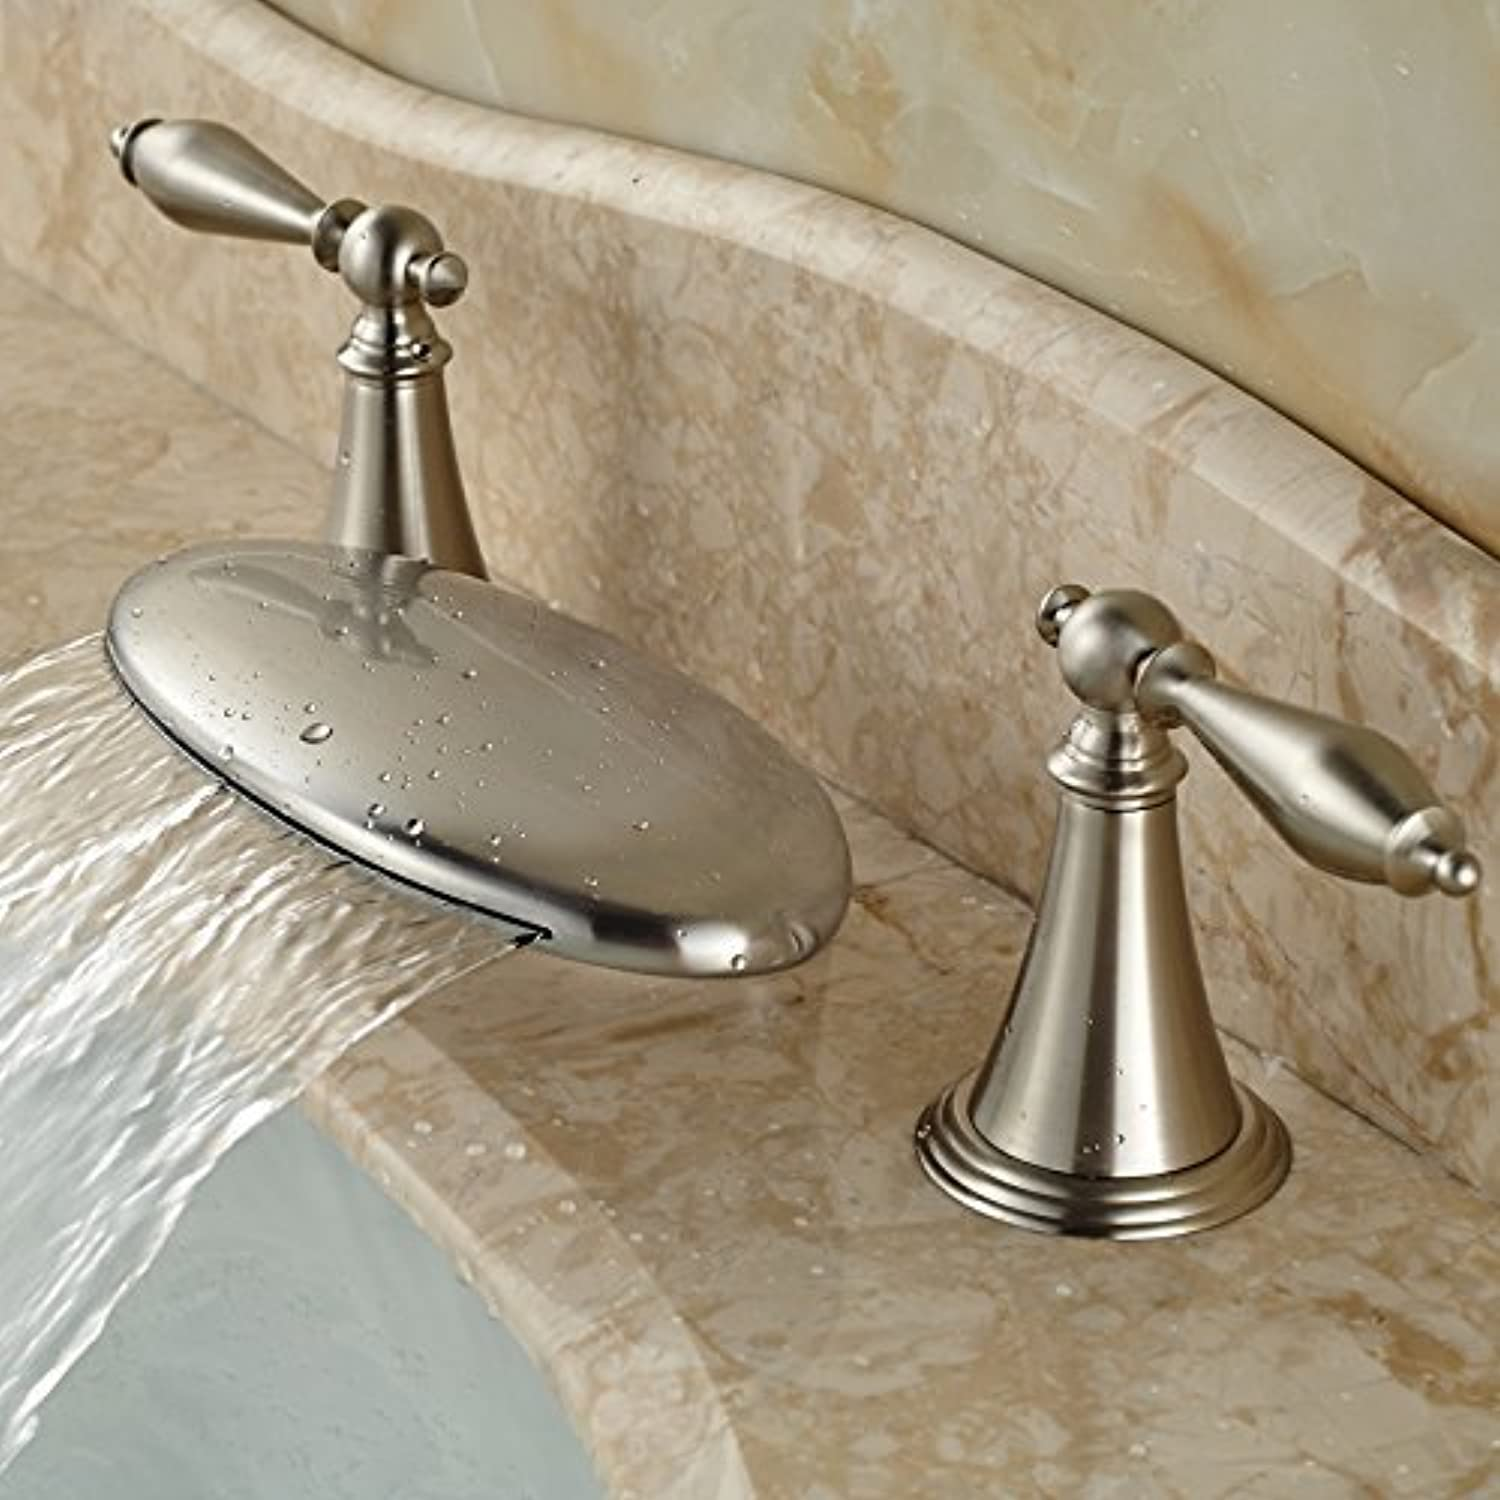 Type Fashionable threeholes Two Handles Faucet Sinks with hot and Cold Water taps Brushed